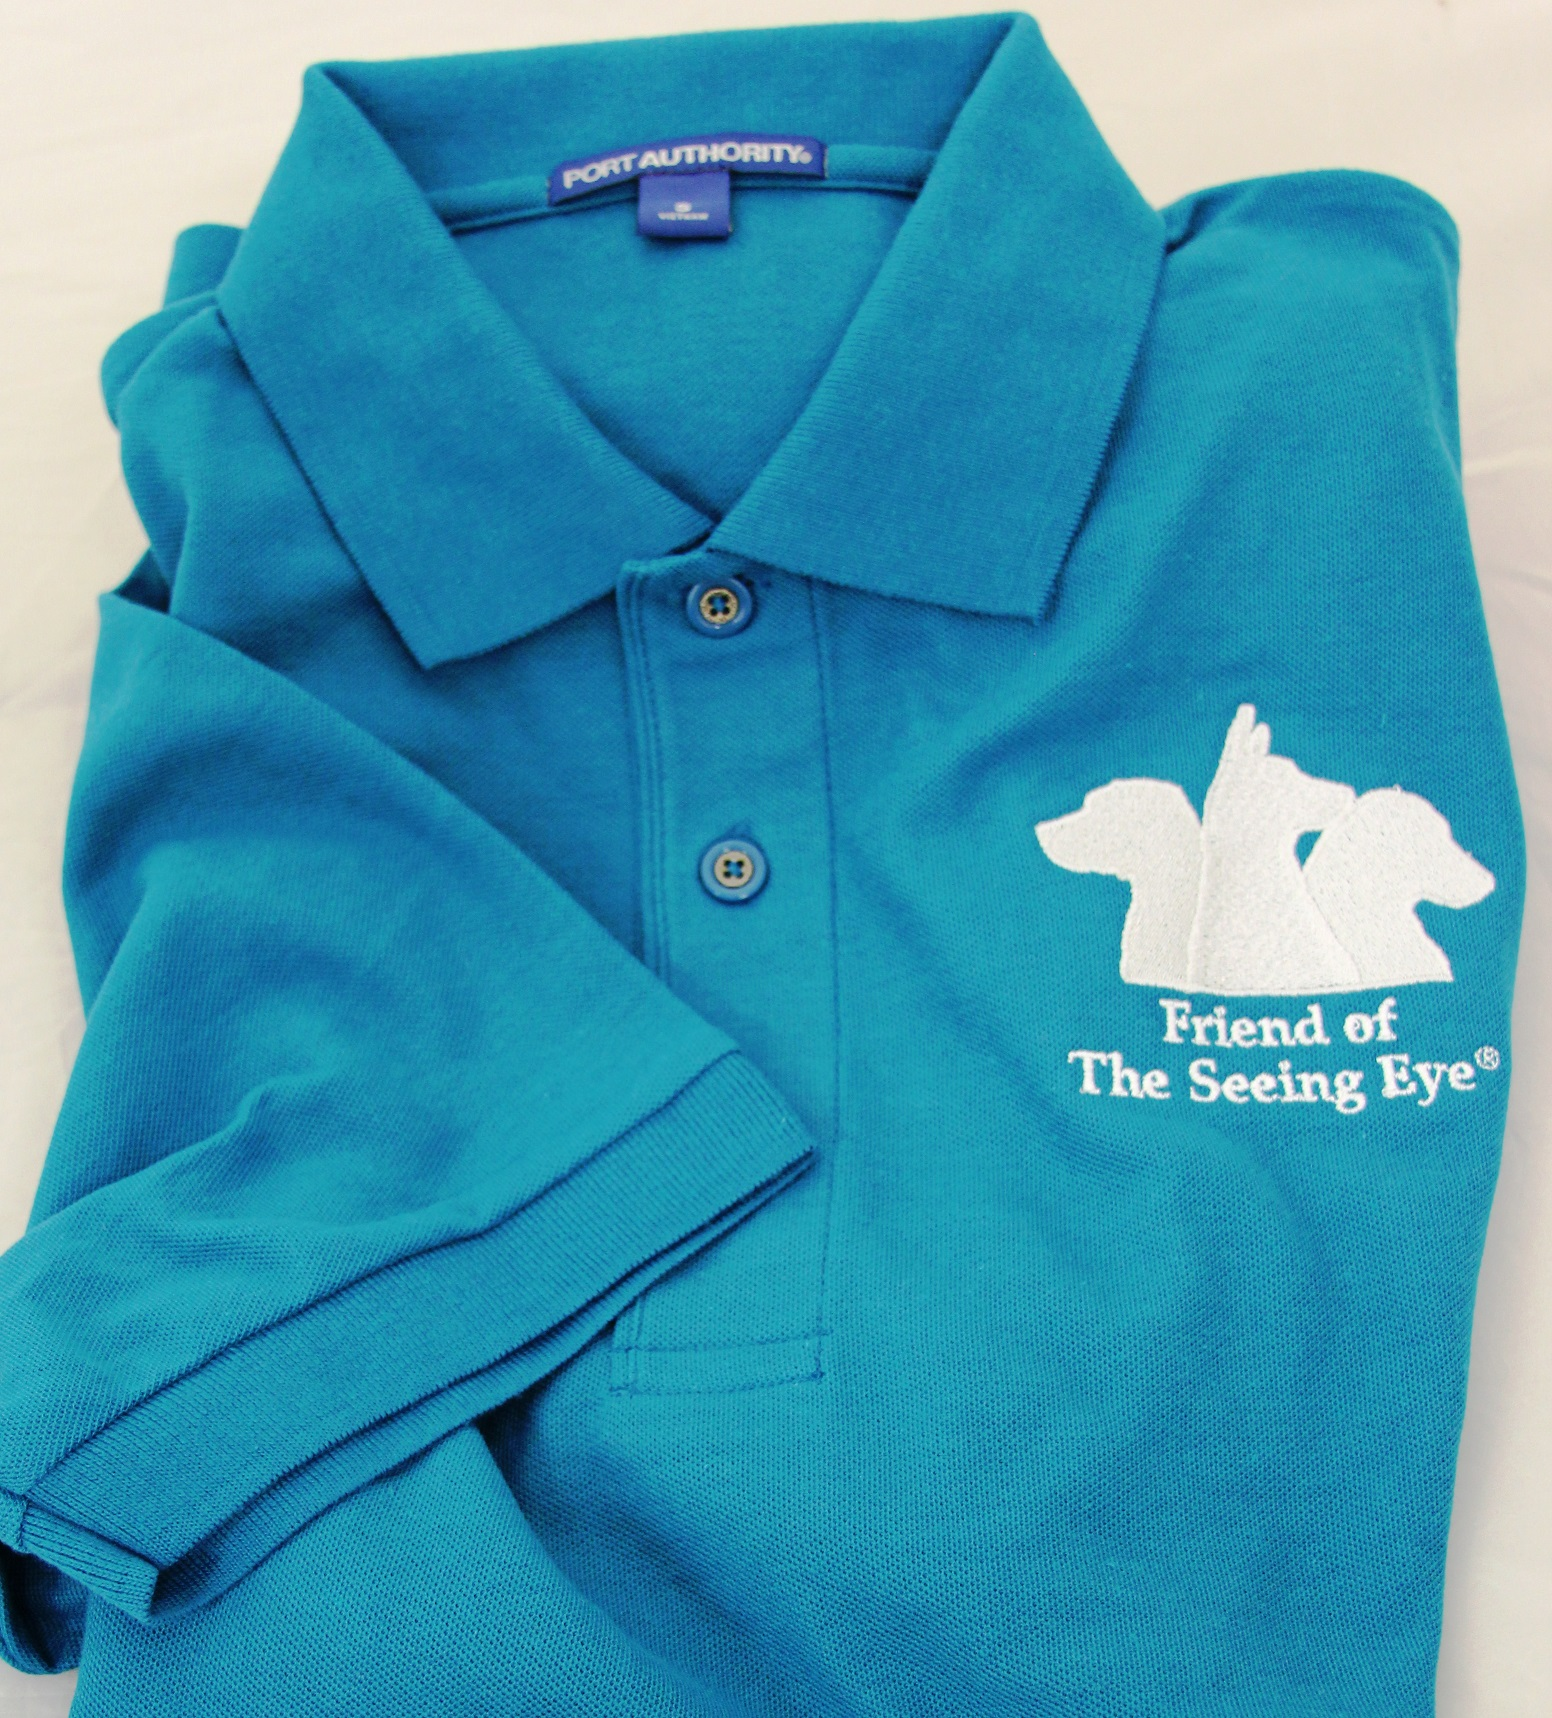 Friend of The Seeing Eye teal polo